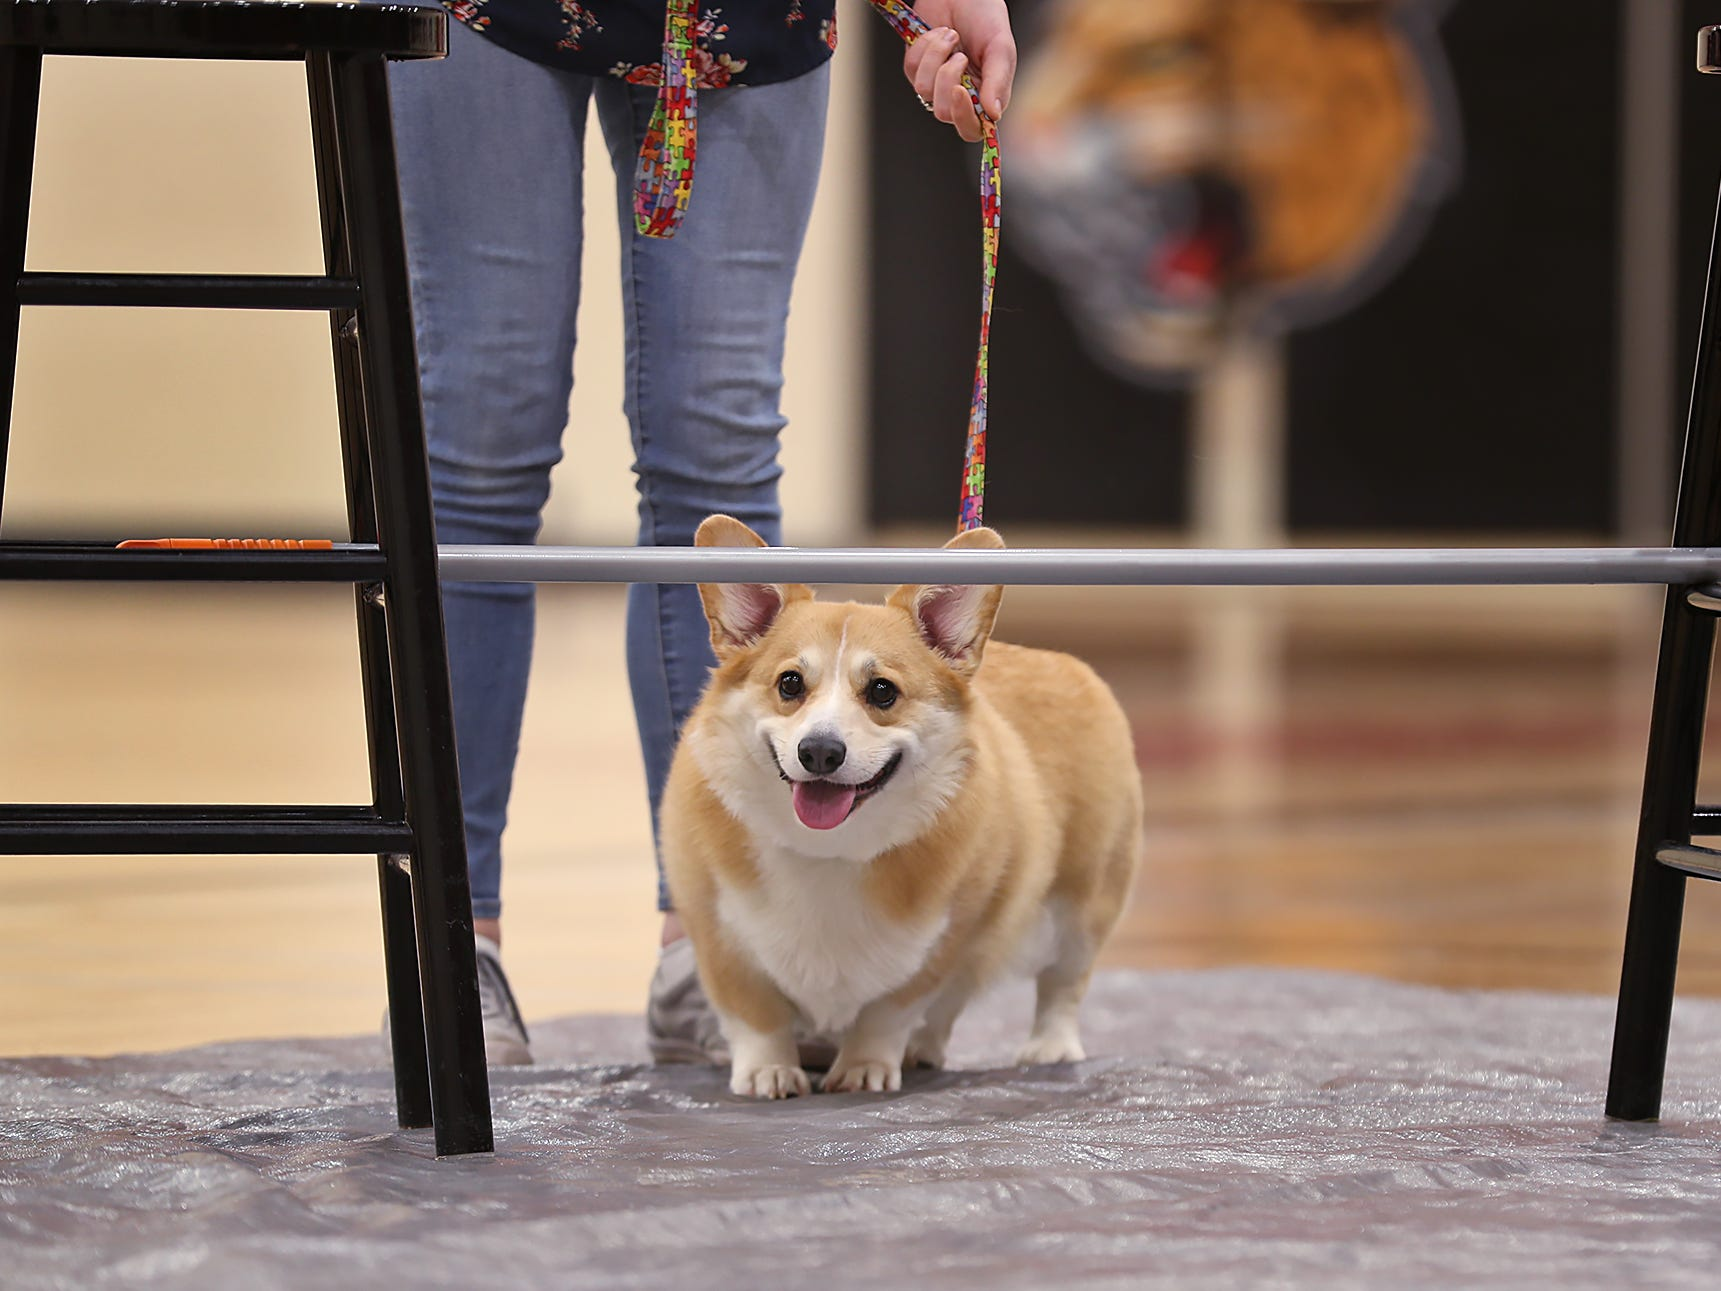 Emmett smiles before heading under the limbo bar at the Indianapolis Corgi Limbo & Costume Contest at IUPUI, Sunday, April 14, 2019.  The event benefits children orphaned by HIV/AIDS in eSwatini, Africa.  It is presented by the Give Hope, Fight Poverty IUPUI chapter.